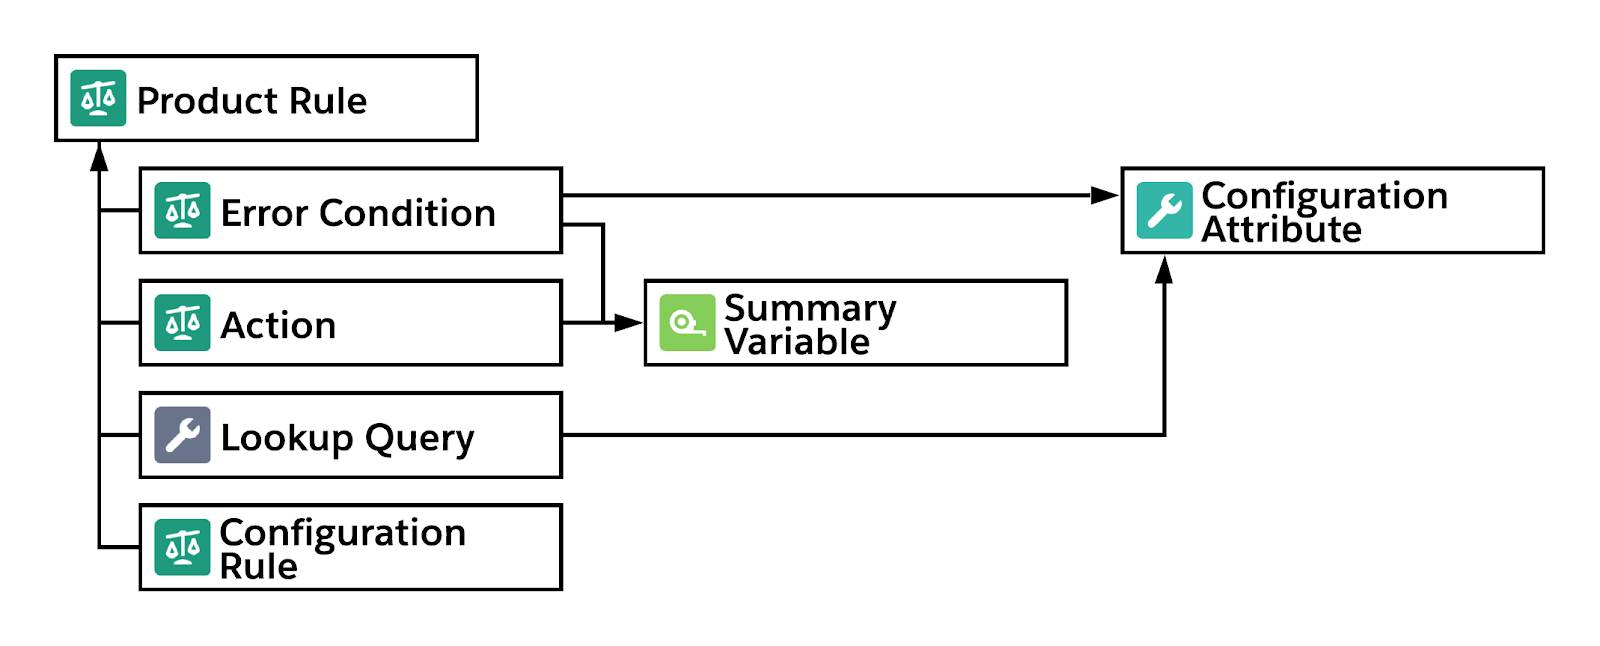 Diagram of Product Rule object relationships including Summary Variables and Configuration Attributes